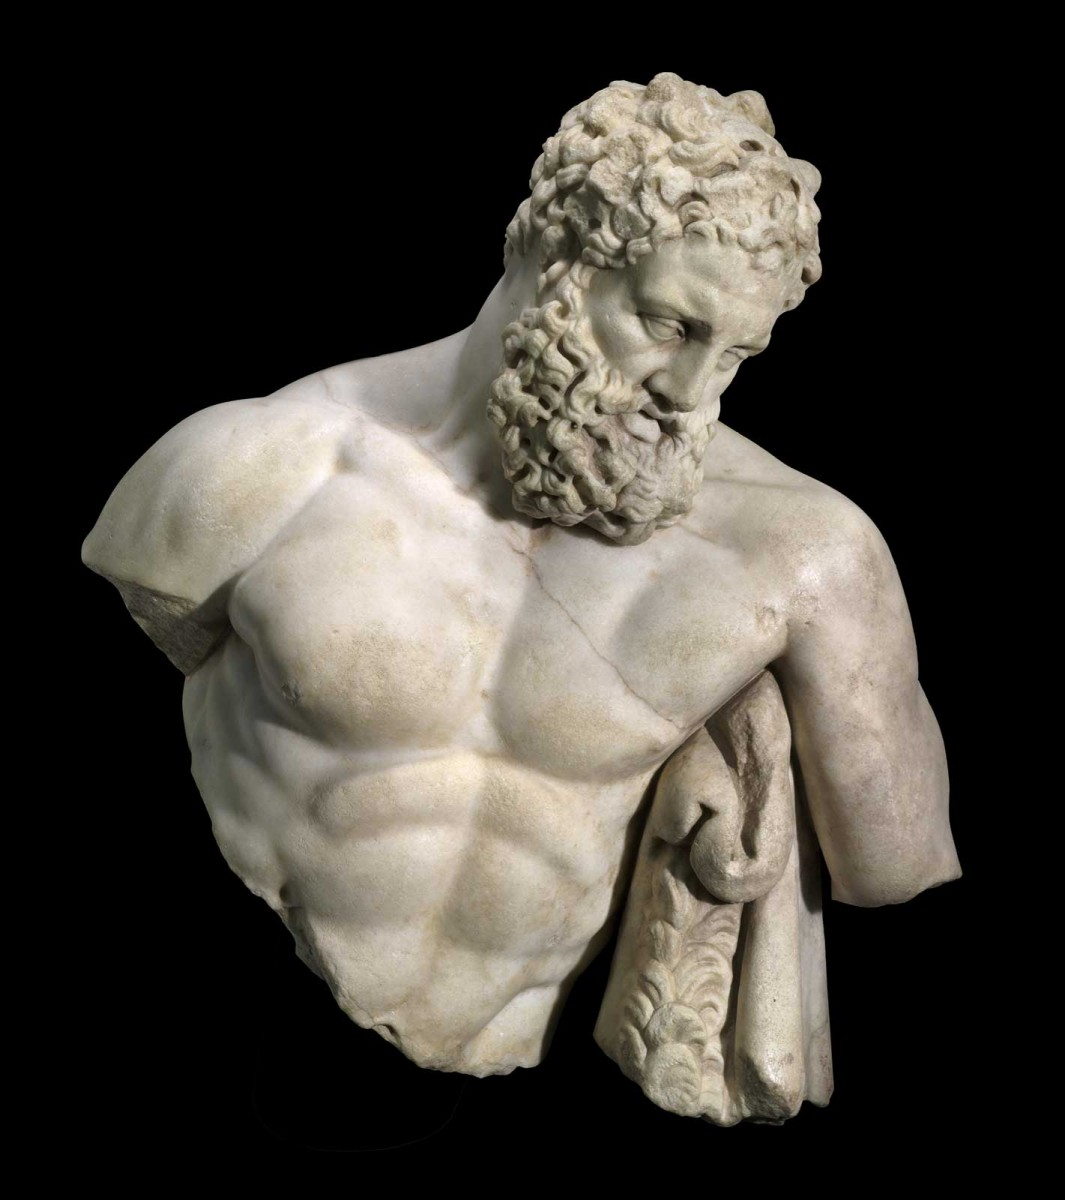 The top half of the 2nd-century AD Roman Imperial marble sculpture